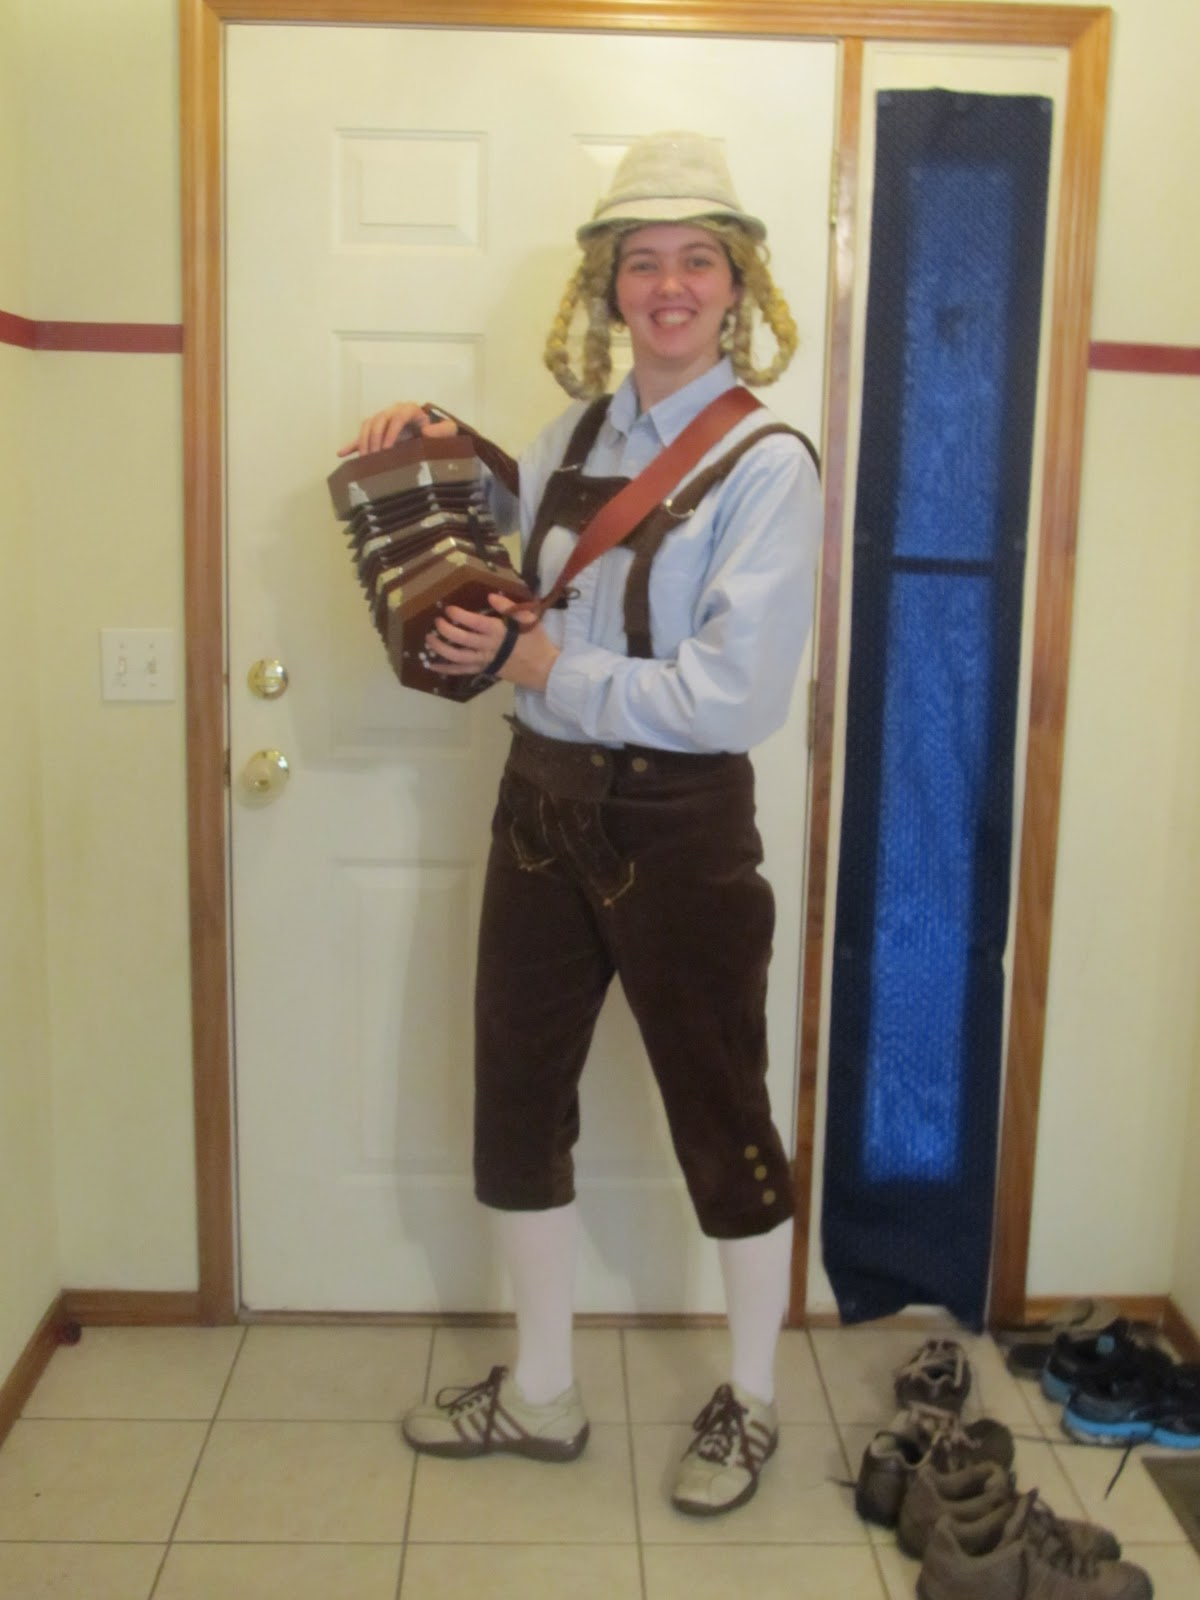 Diy project crazy homemade lederhosen with out a pattern solutioingenieria Image collections